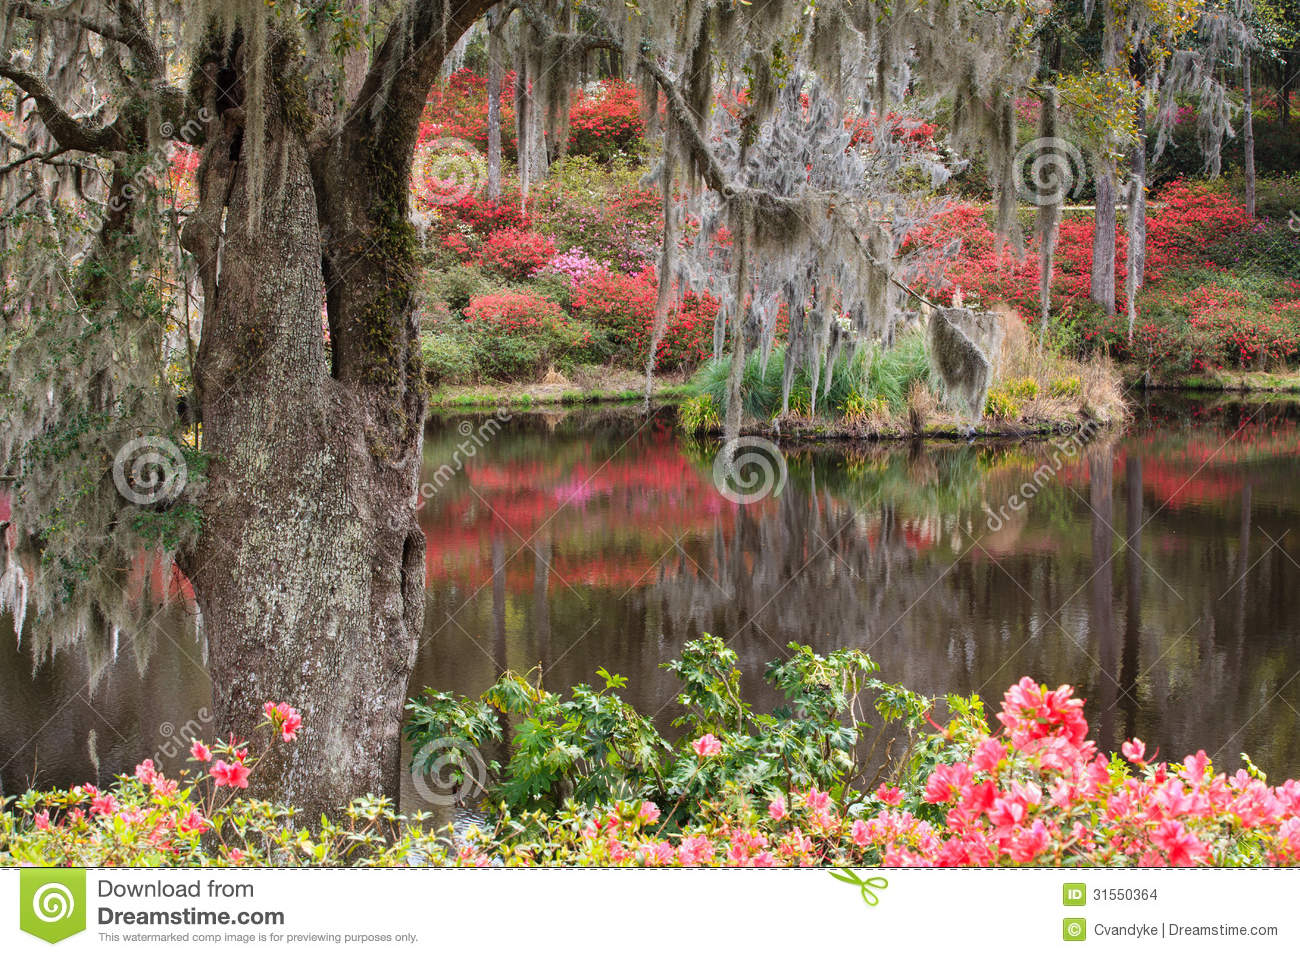 Charleston SC Southern Garden Landscape Stock Photo - Image of moss ...